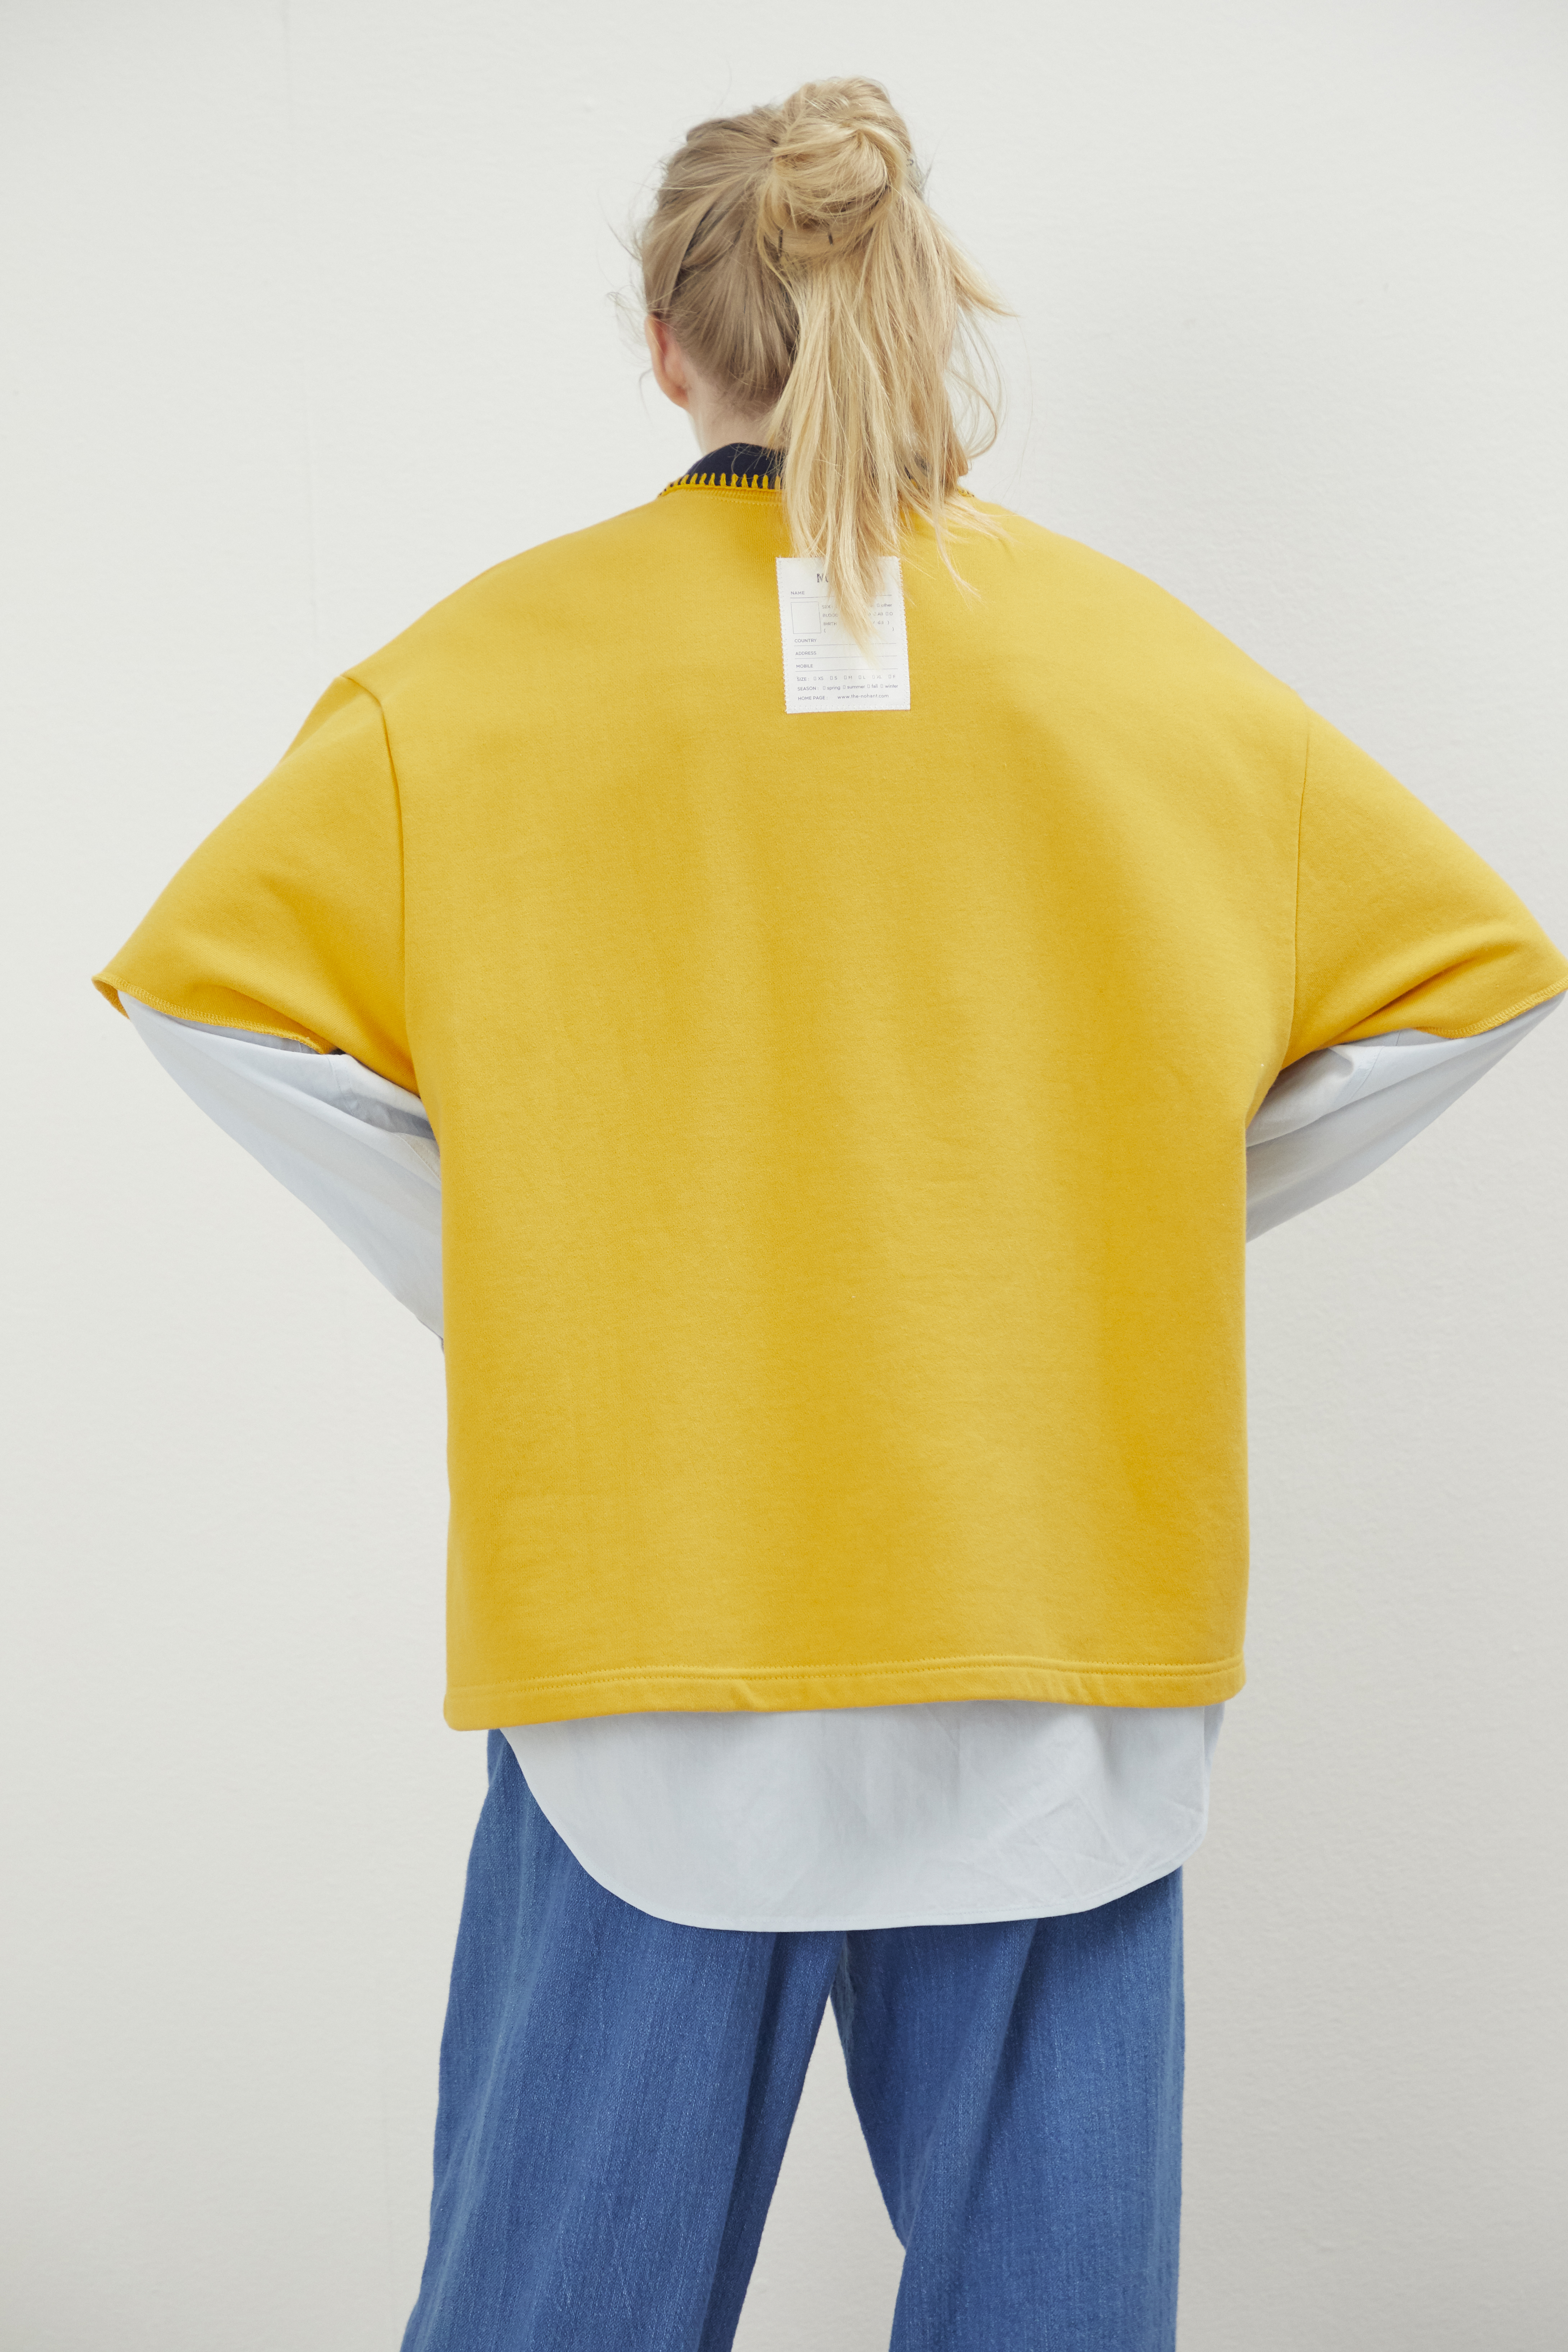 LONELYLOVELYCROPPEDSWEATSHIRTYELLOW-Product-Description-3